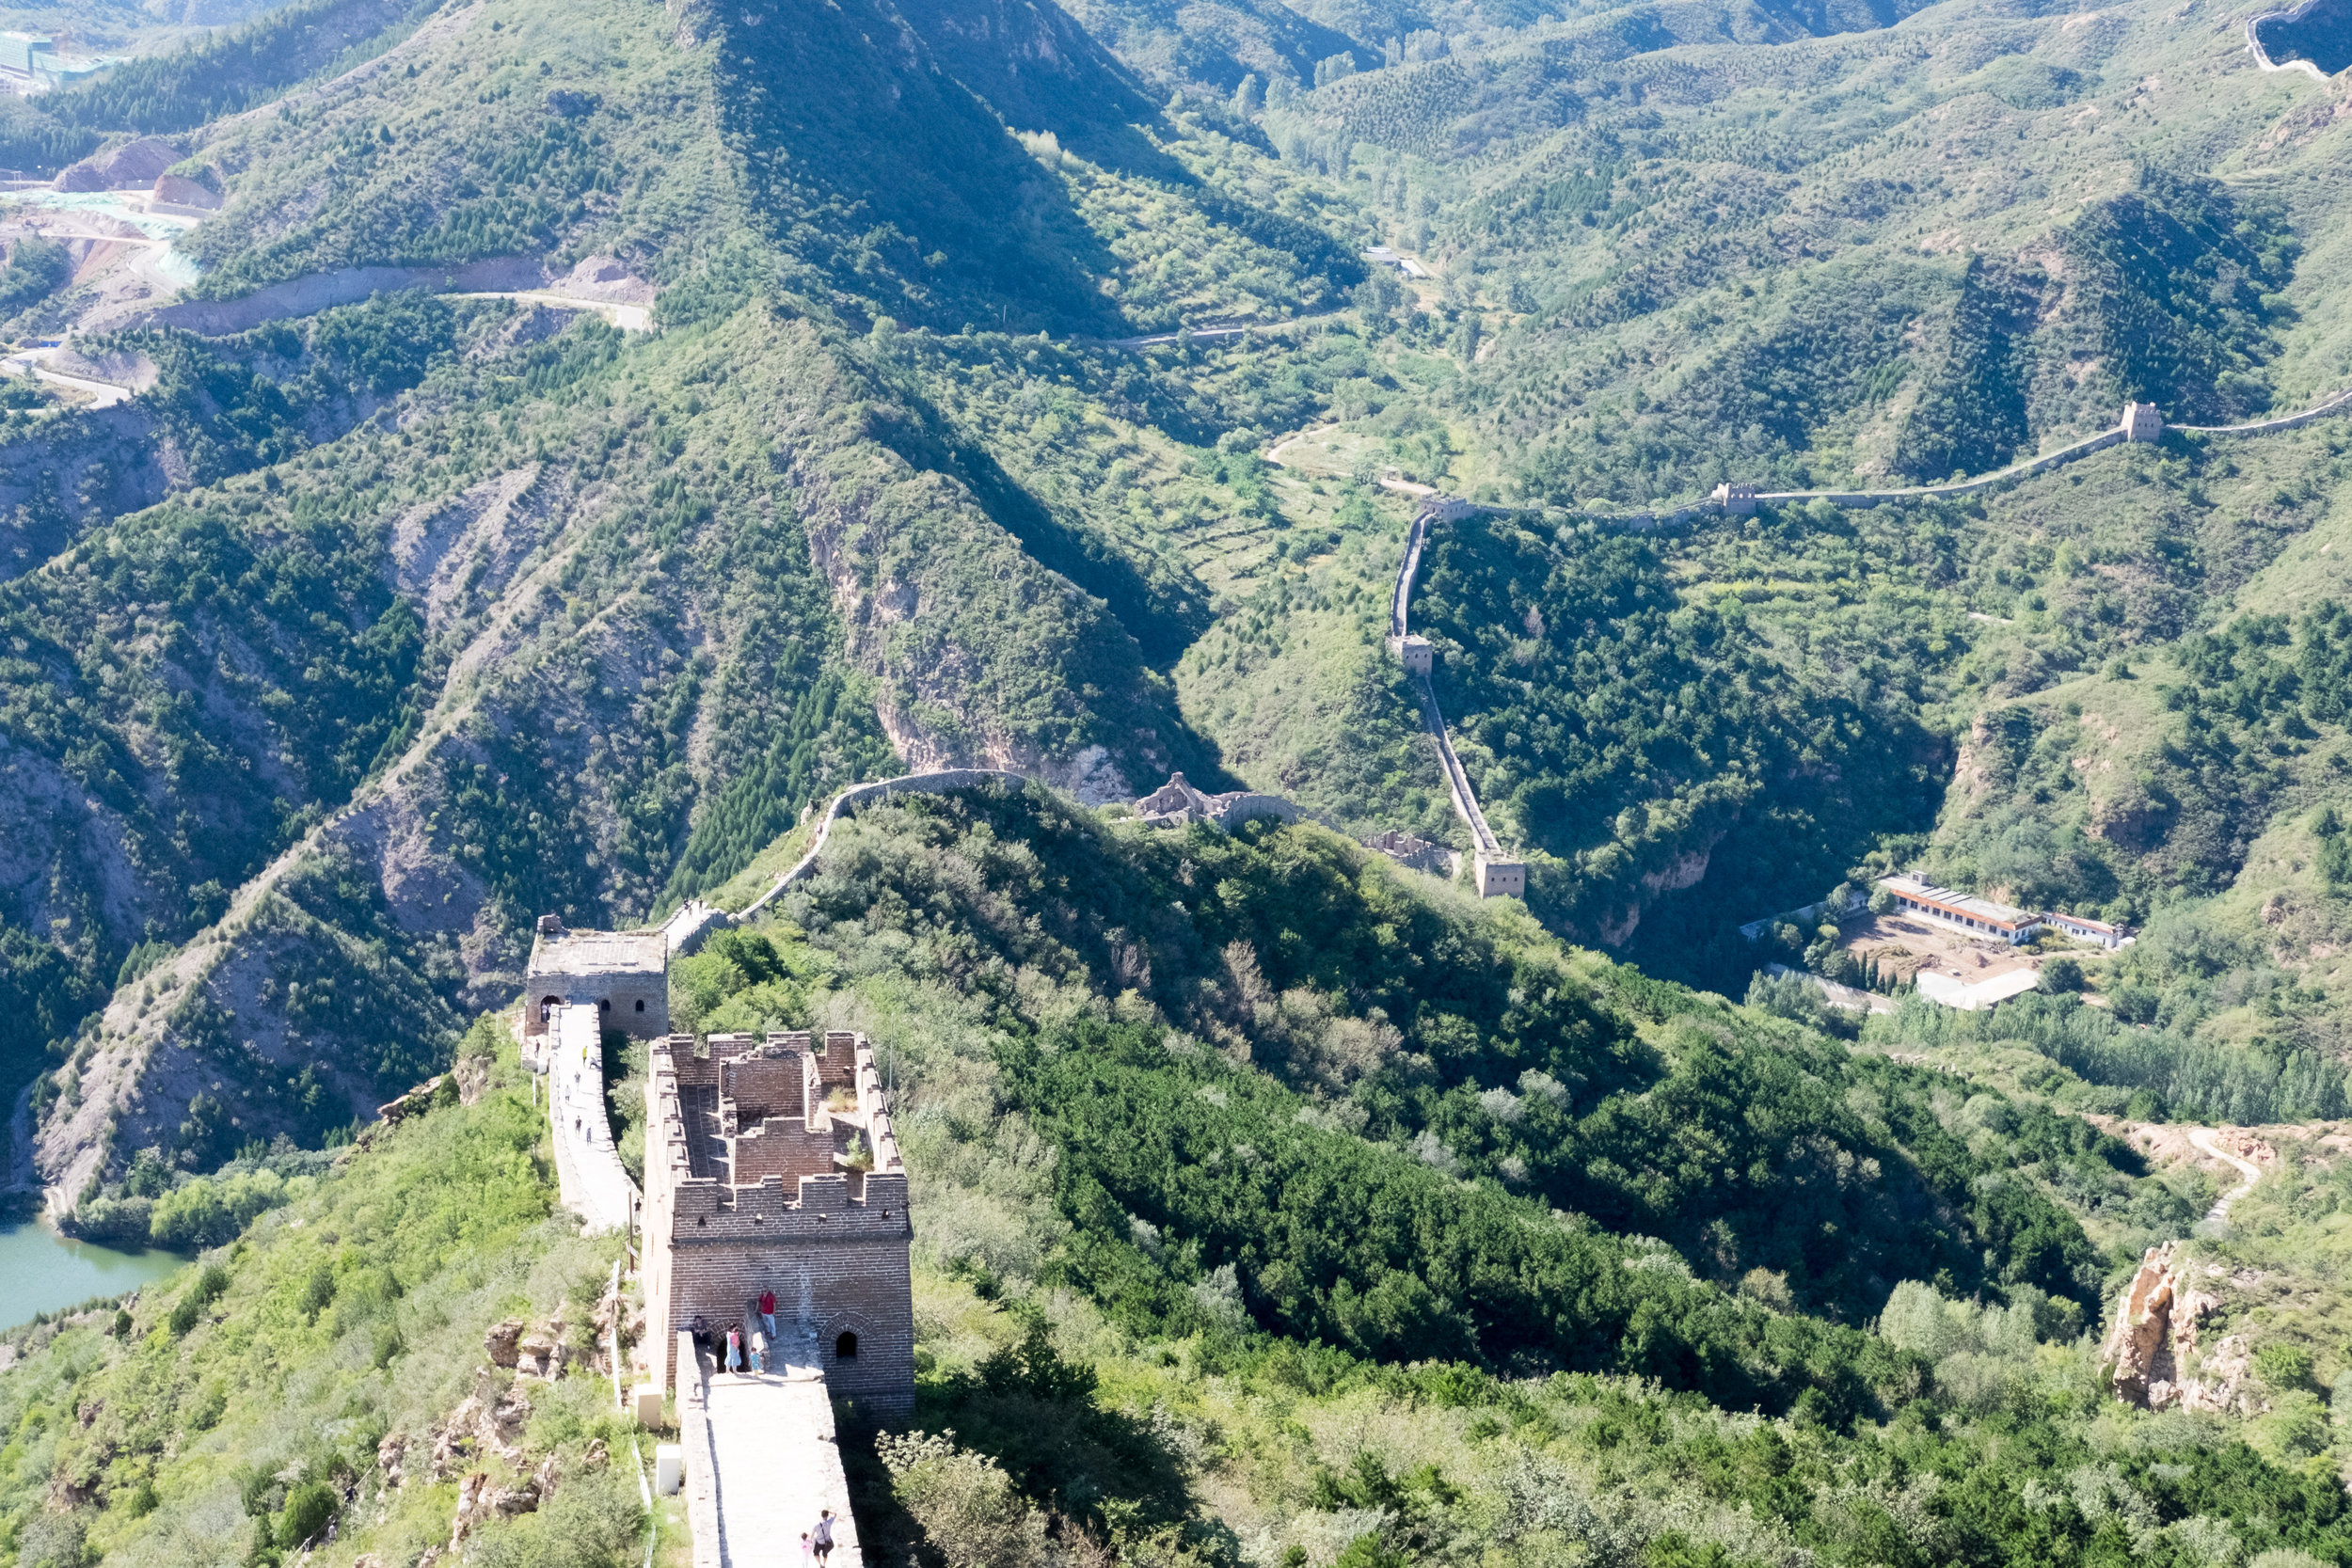 We visited this part of the Great Wall in Northern Beijing thanks to friends' recommendations